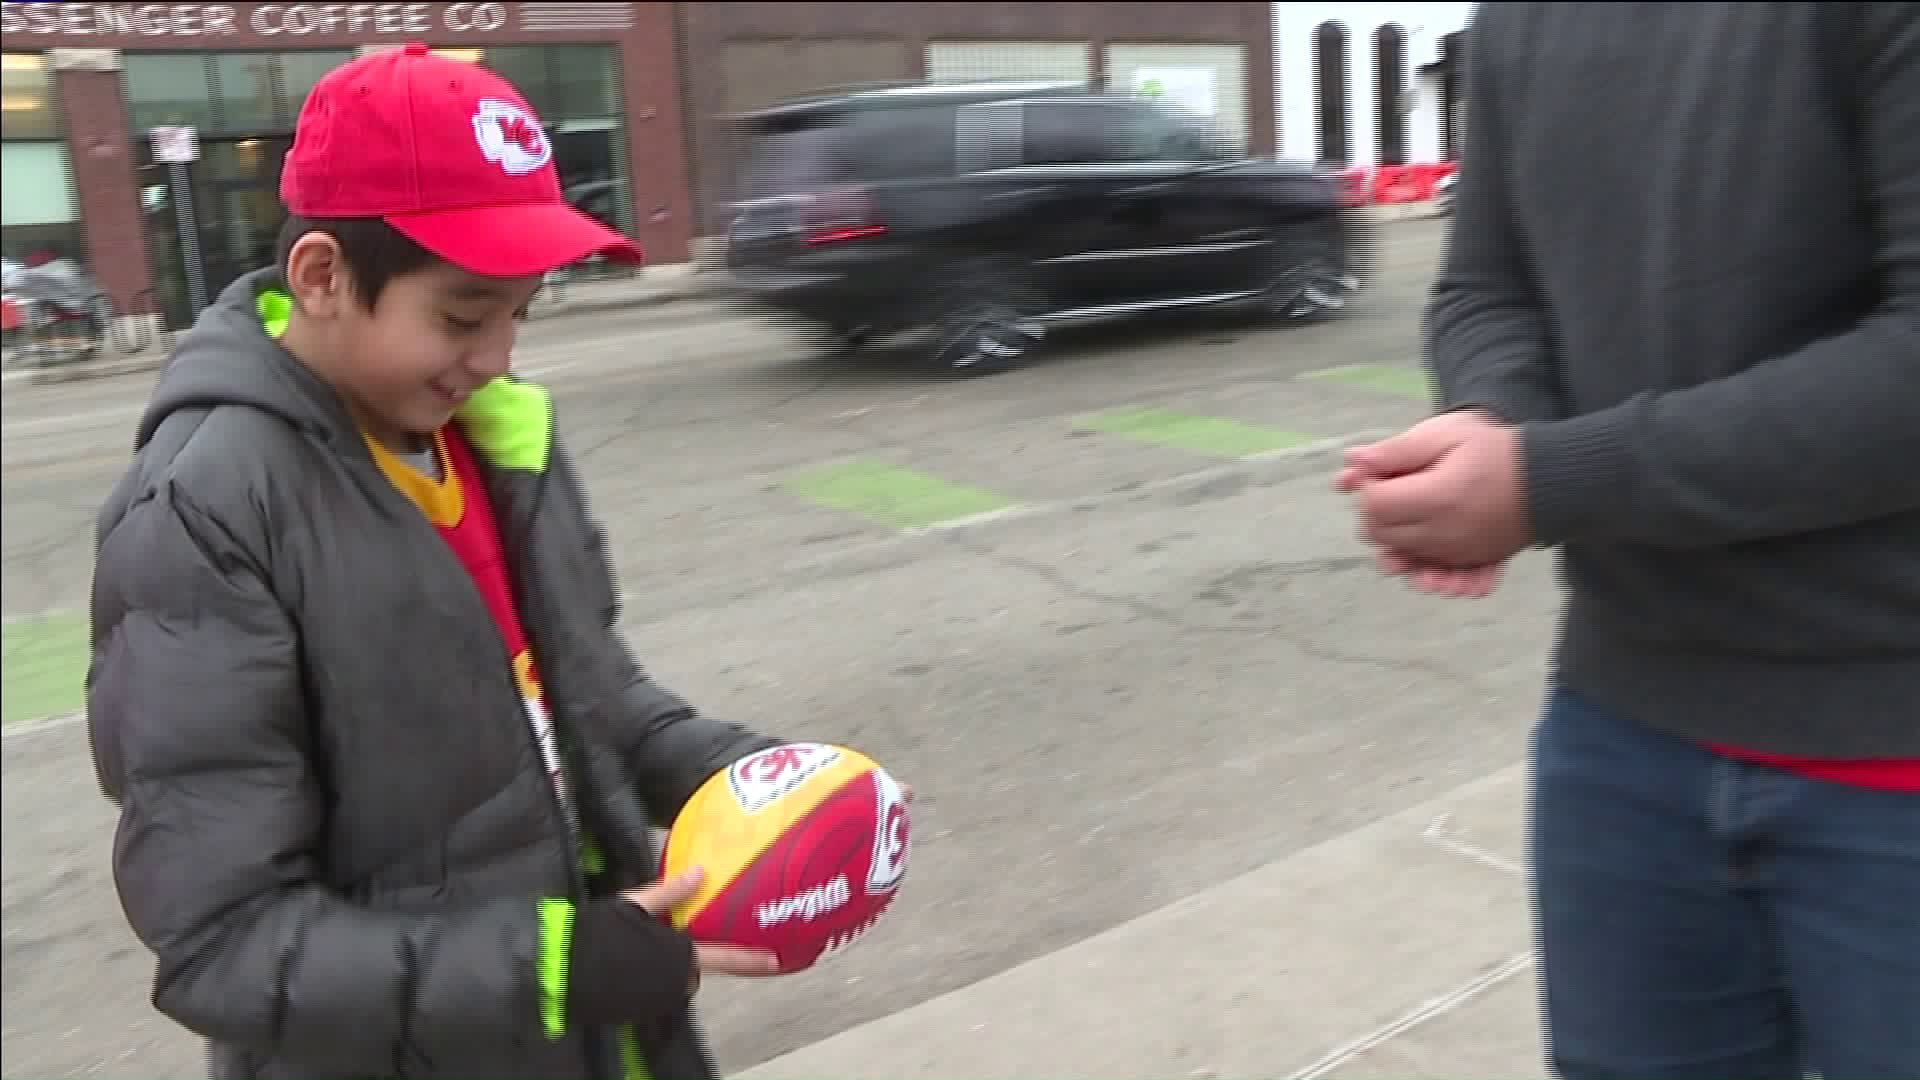 A boy is reunited with the Super Bowl souvenir ball he lost at the Chiefs parade. (Photo by WDAF)